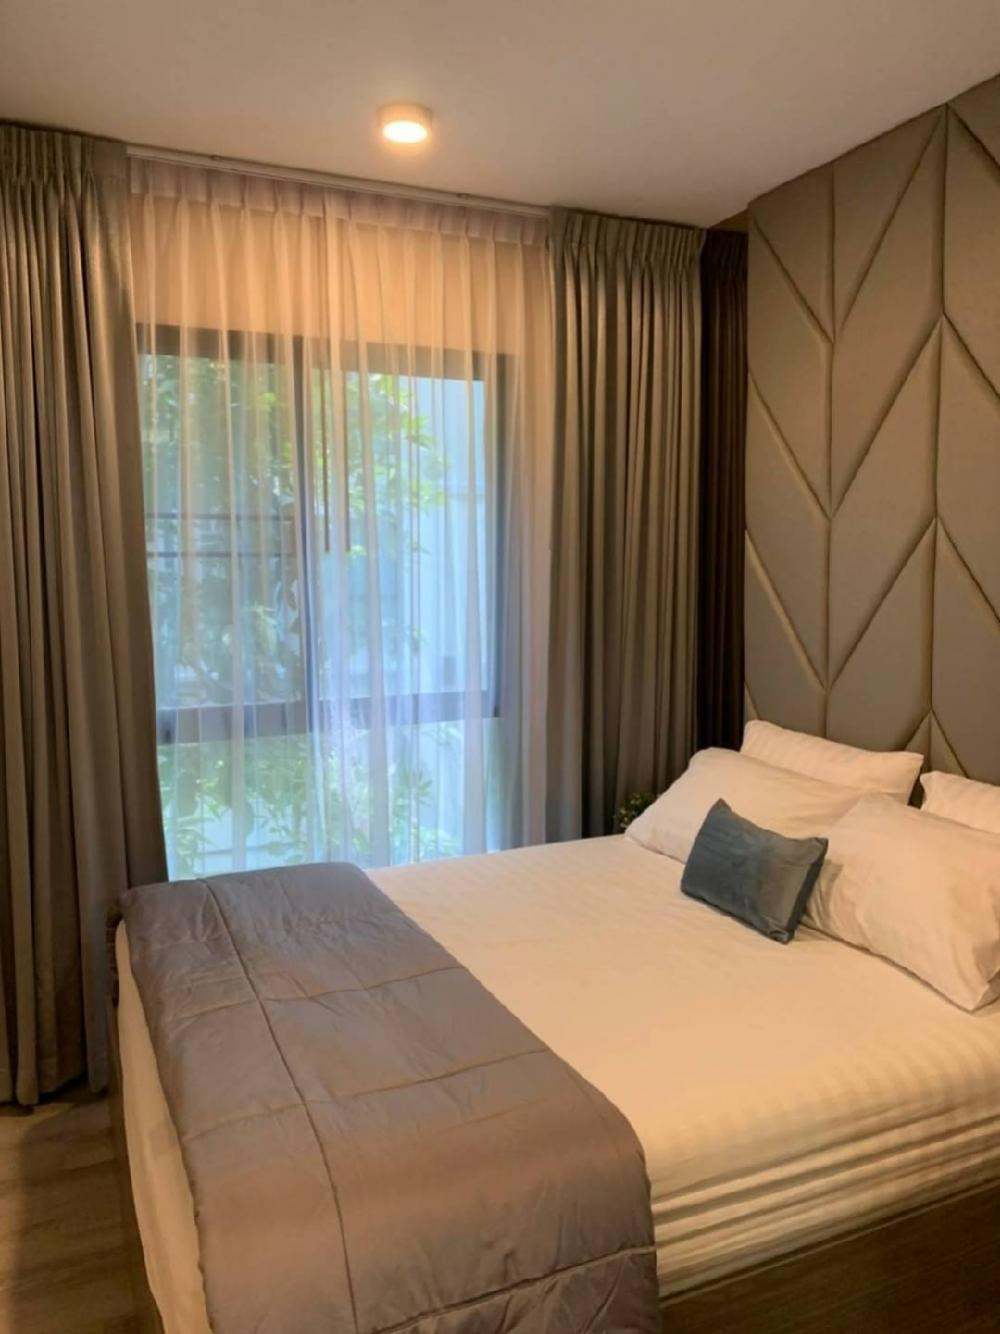 For RentCondoSamrong, Samut Prakan : Notting Hill, luxury condo, affordable price, beautiful, complete